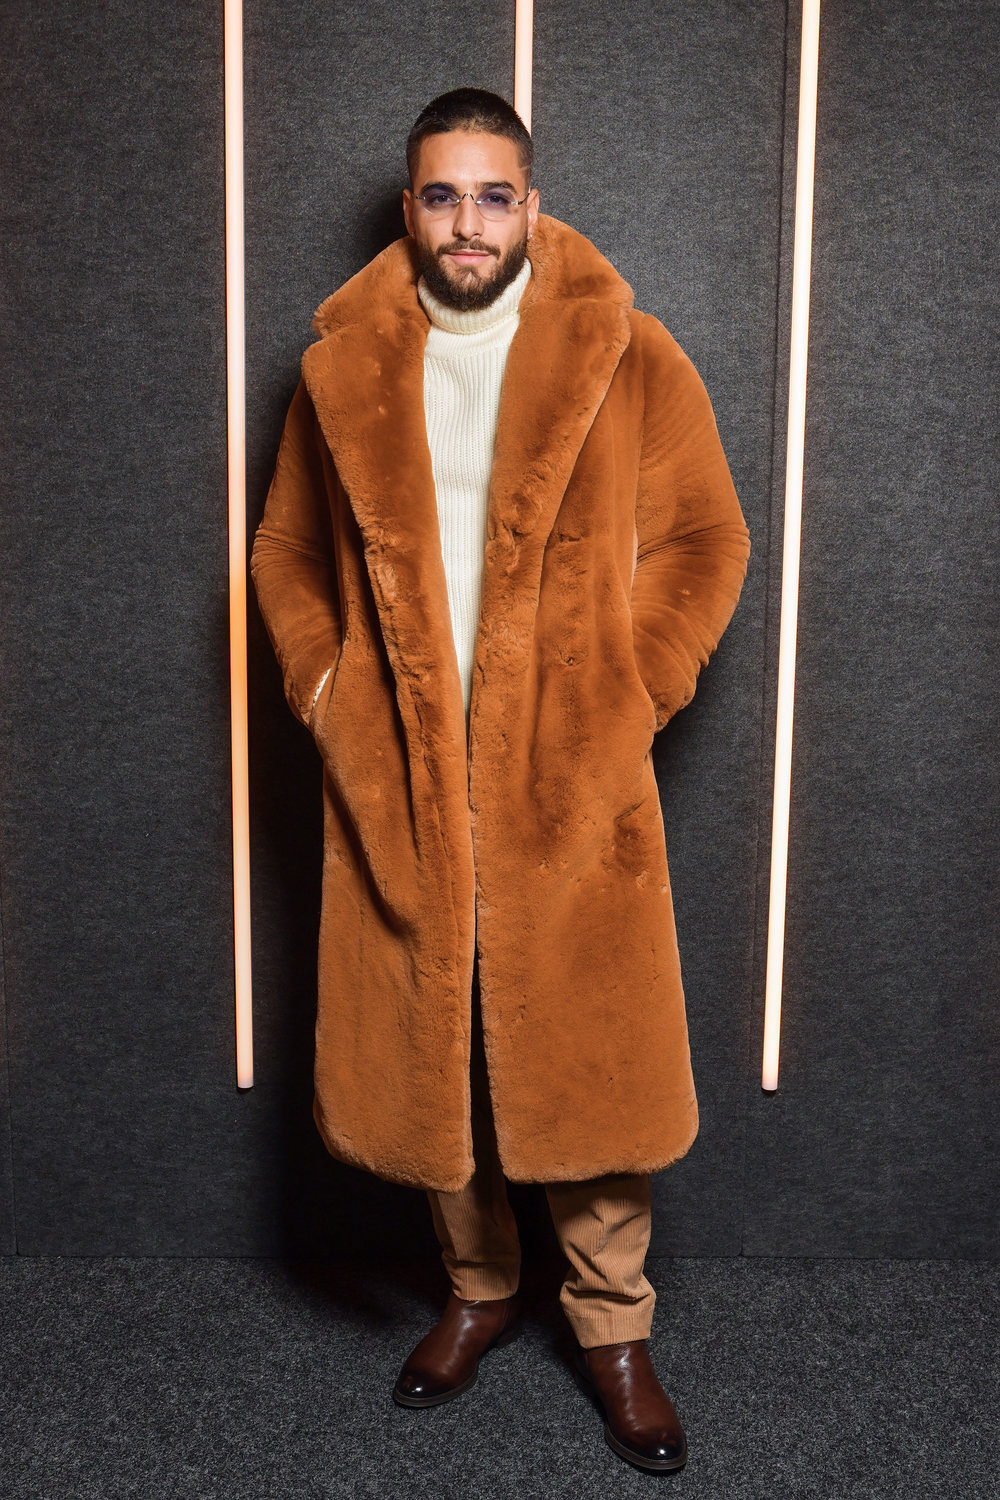 MALUMA backstage at the BOSS Fall/Winter 2019 show at Basketball City during New York Fashion Week on Wednesday, February 13, in New York City. Photography, Courtesy of BOSS.